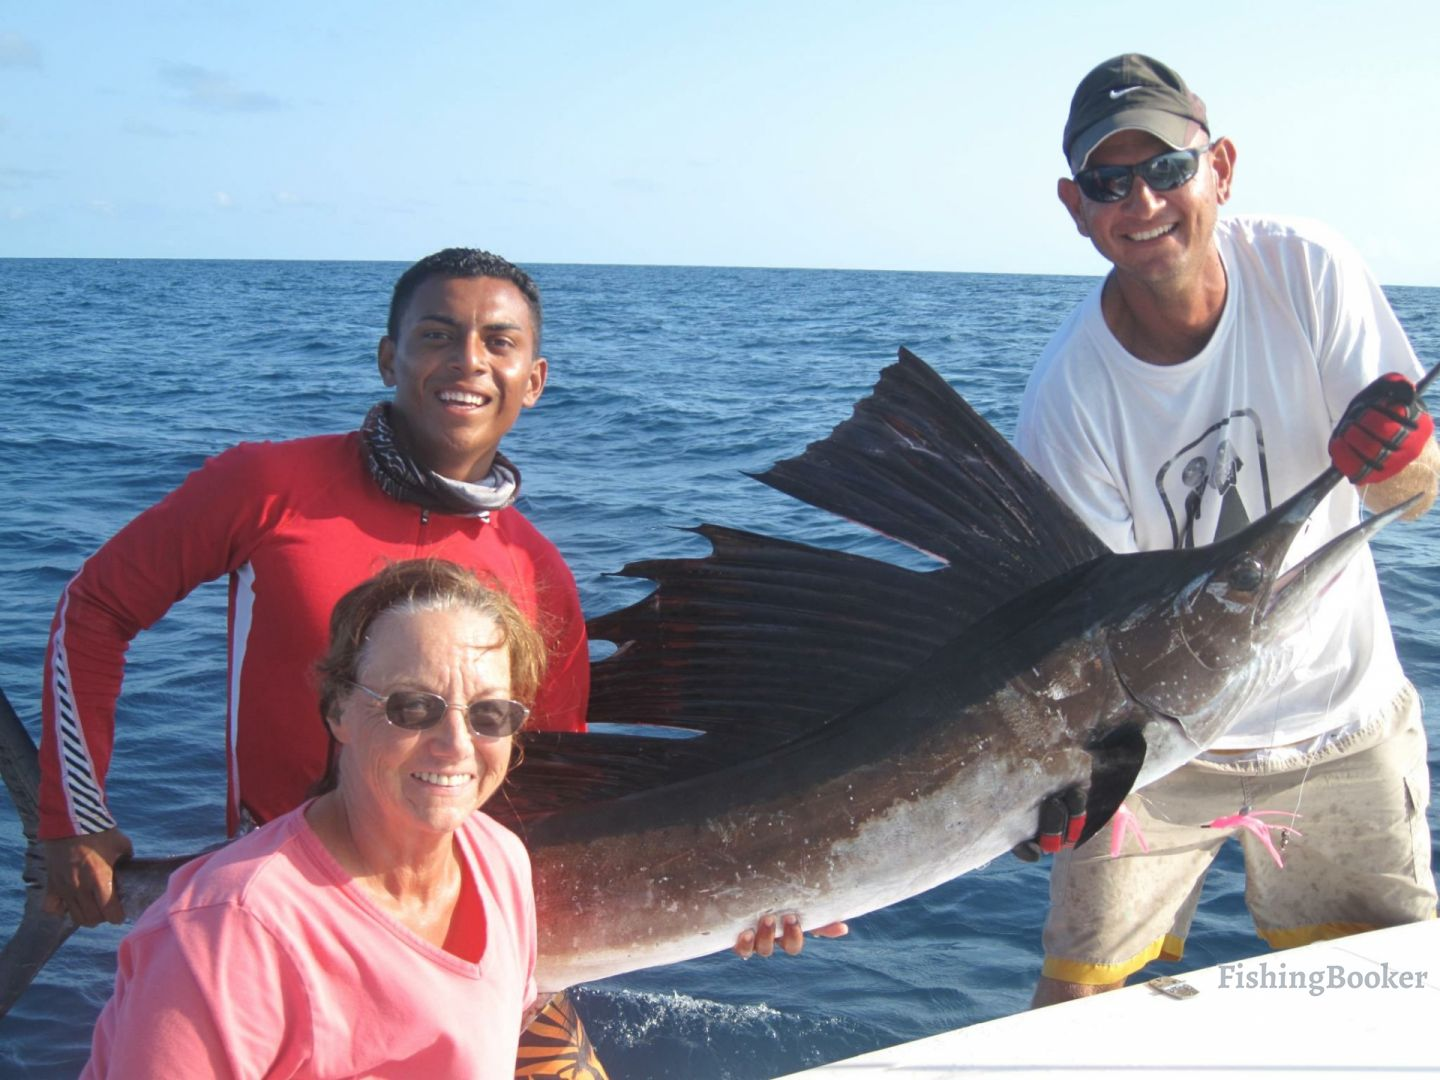 Big game fishing in Belize: Anglers holding a Sailfish